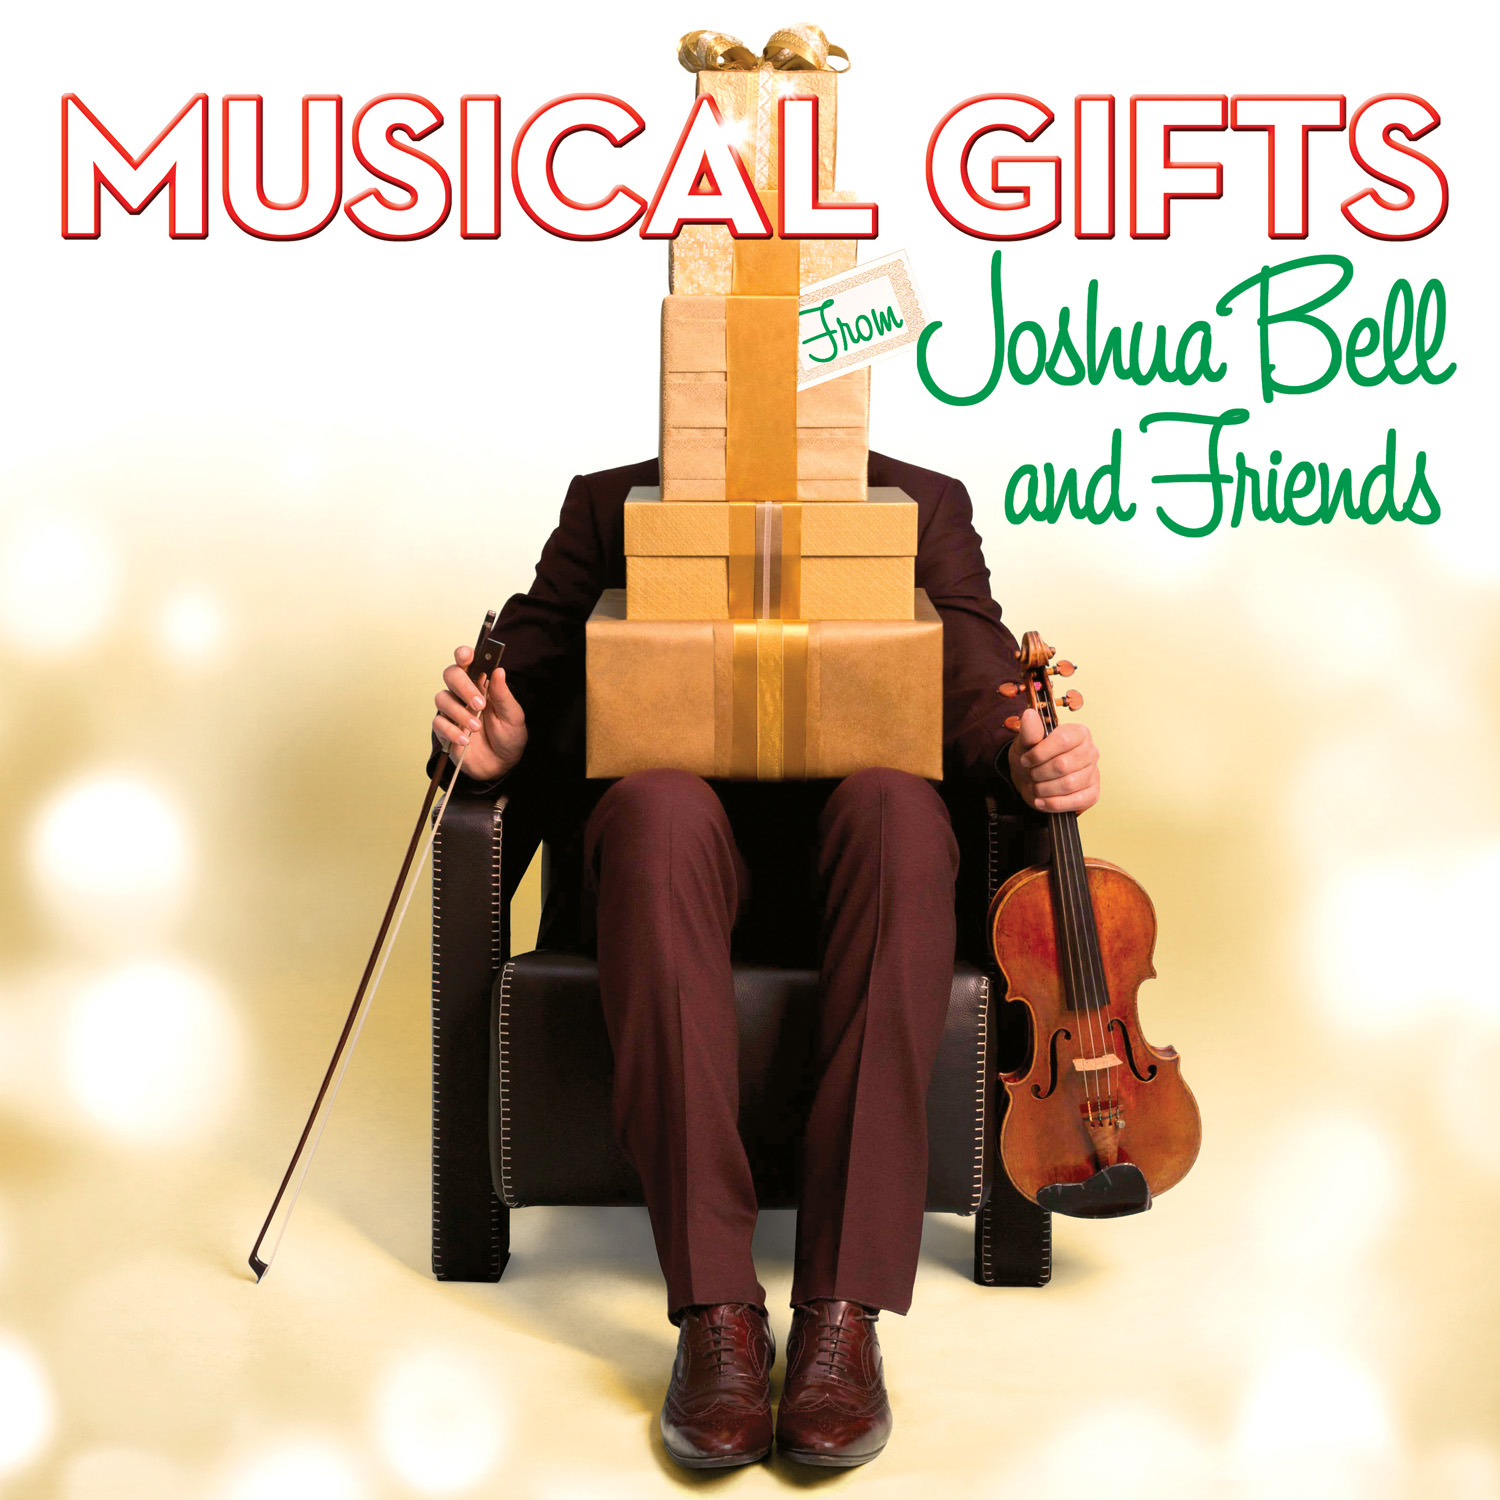 Bell_Musical-Gifts_cover